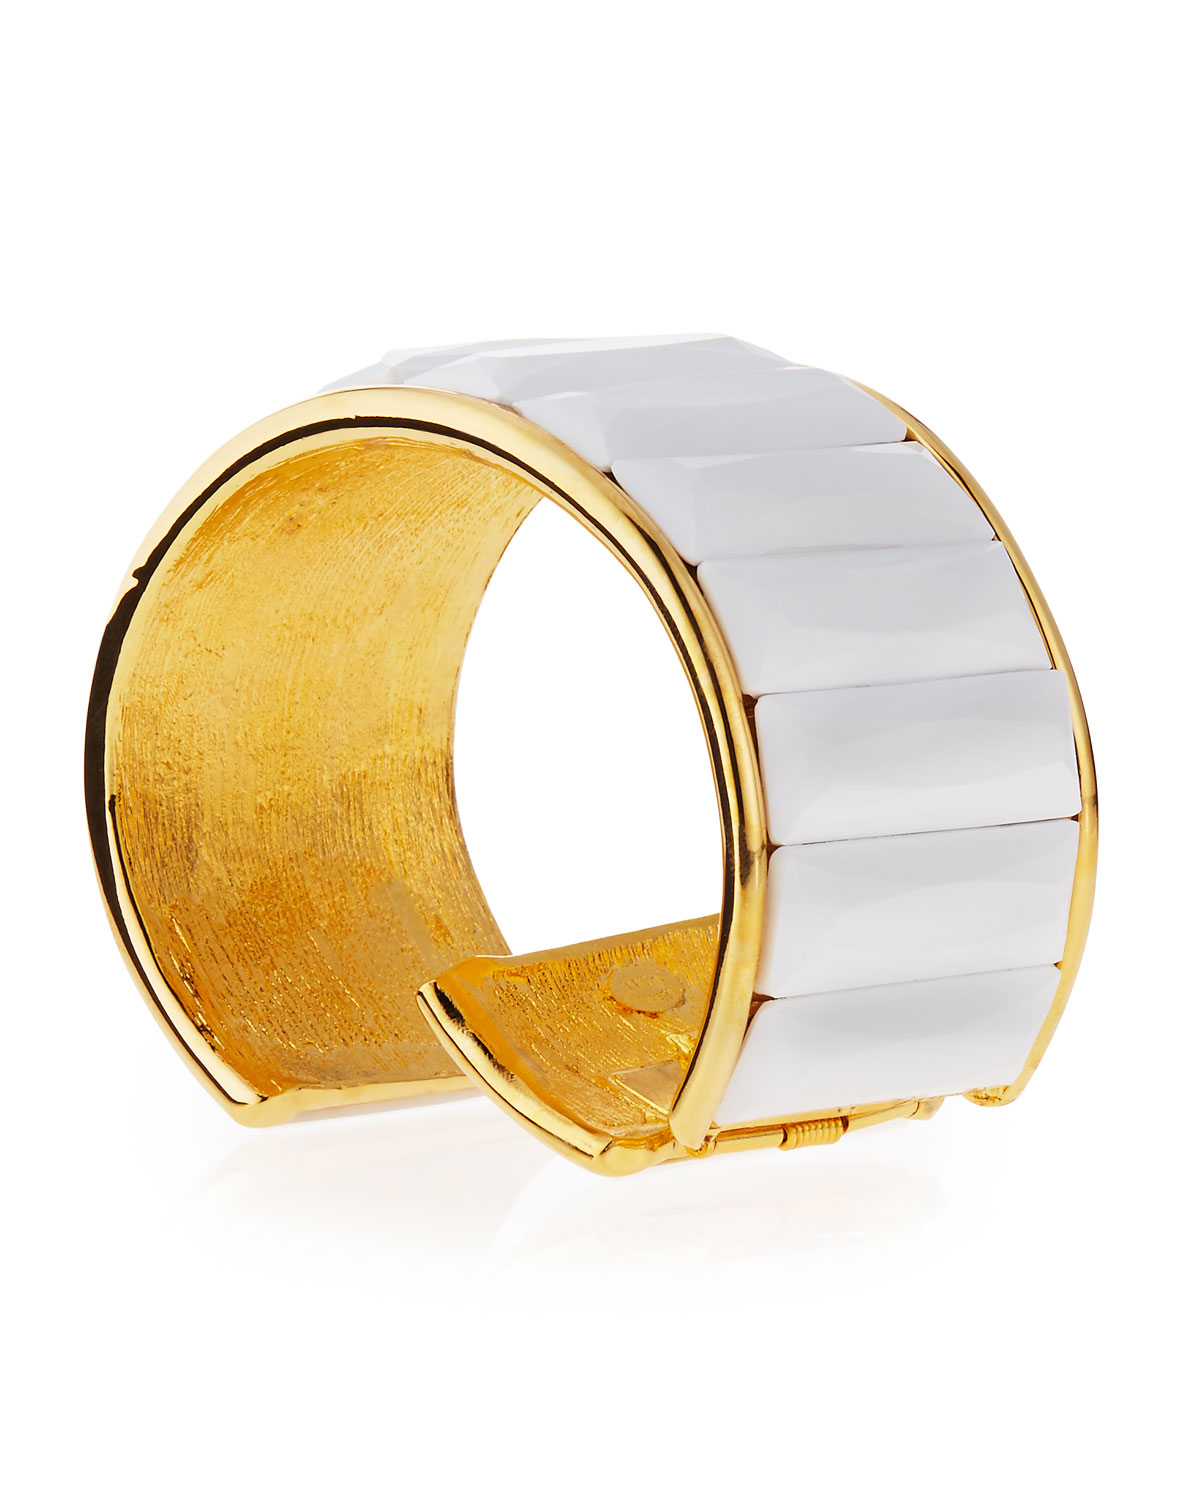 Faceted-Bar Cuff Bracelet, Gold/White - Kenneth Jay Lane